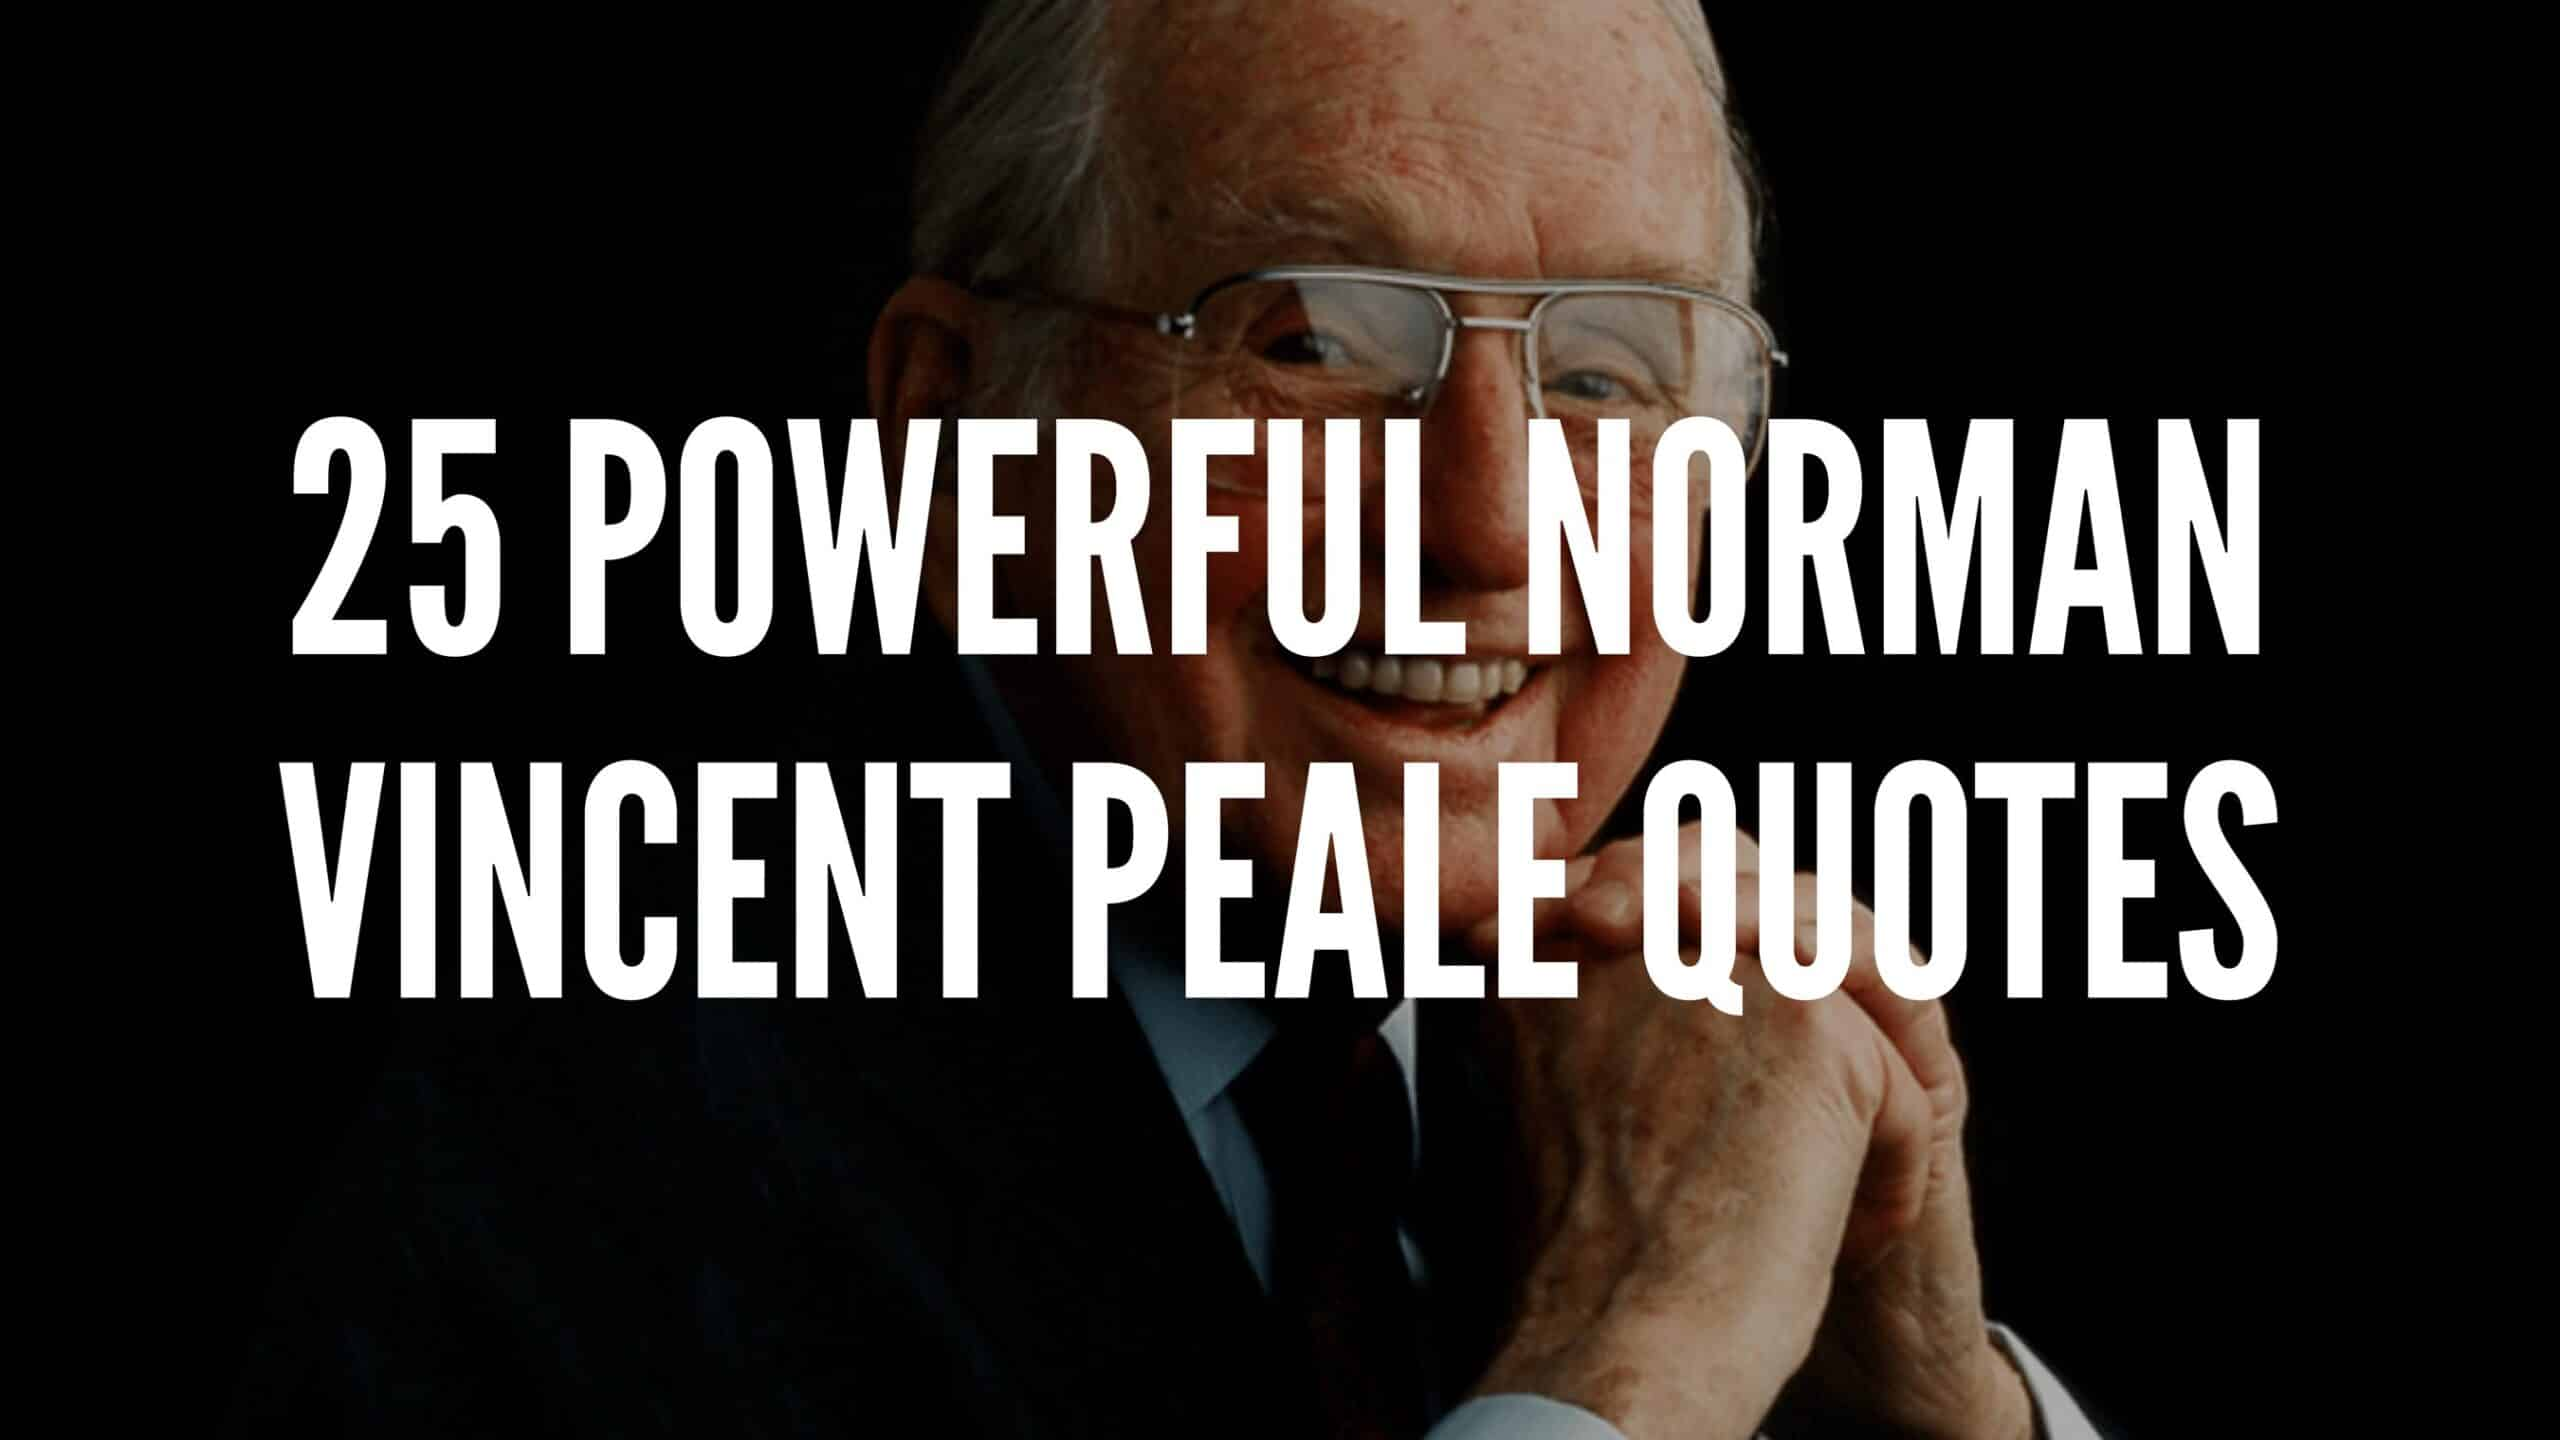 Norman Vincent Peale Quotes